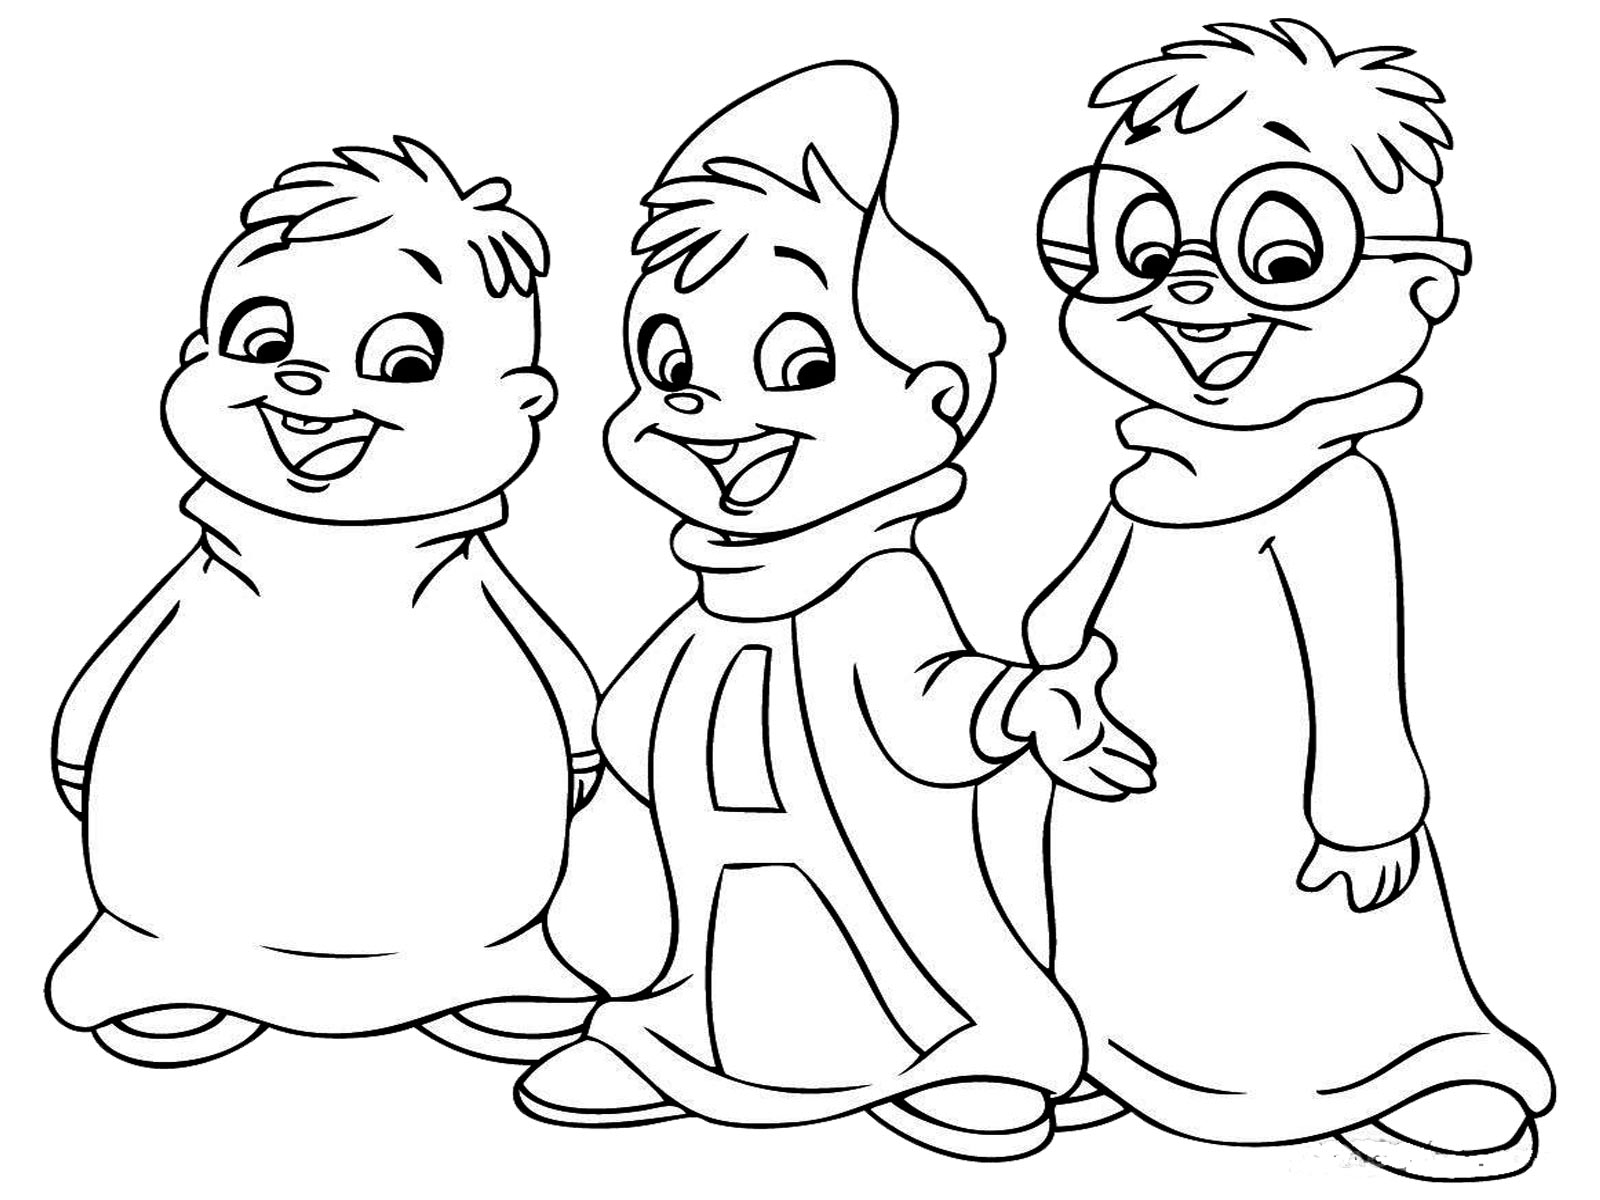 three friends printable coloring image for kids